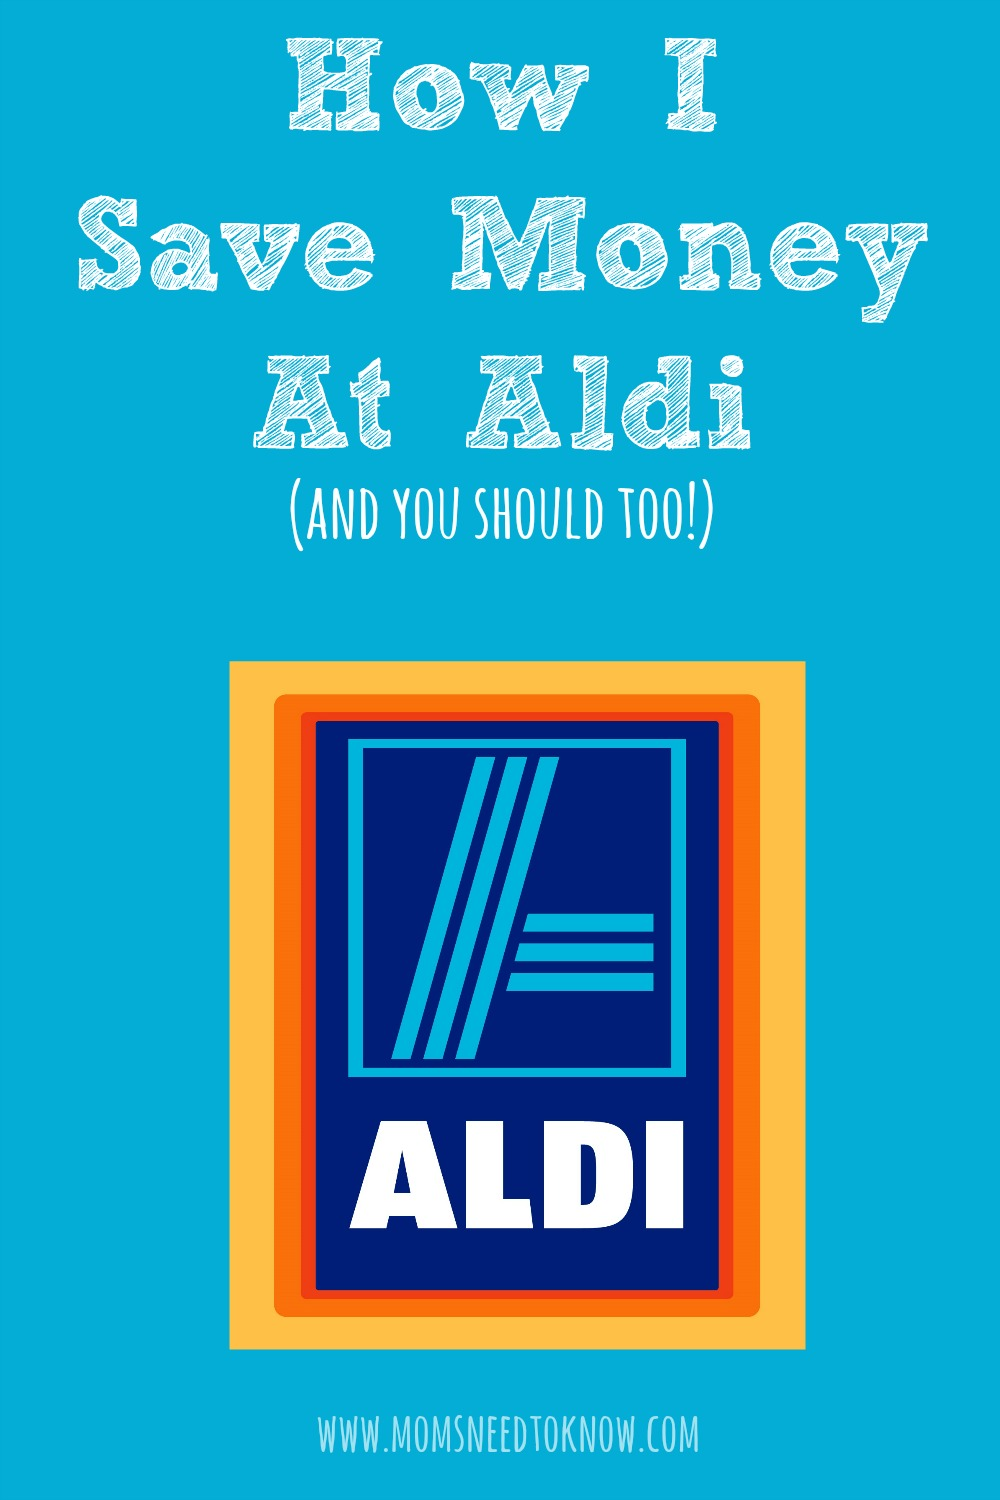 Aldi is one of my favorite places to shop because you can get SO much for so little!